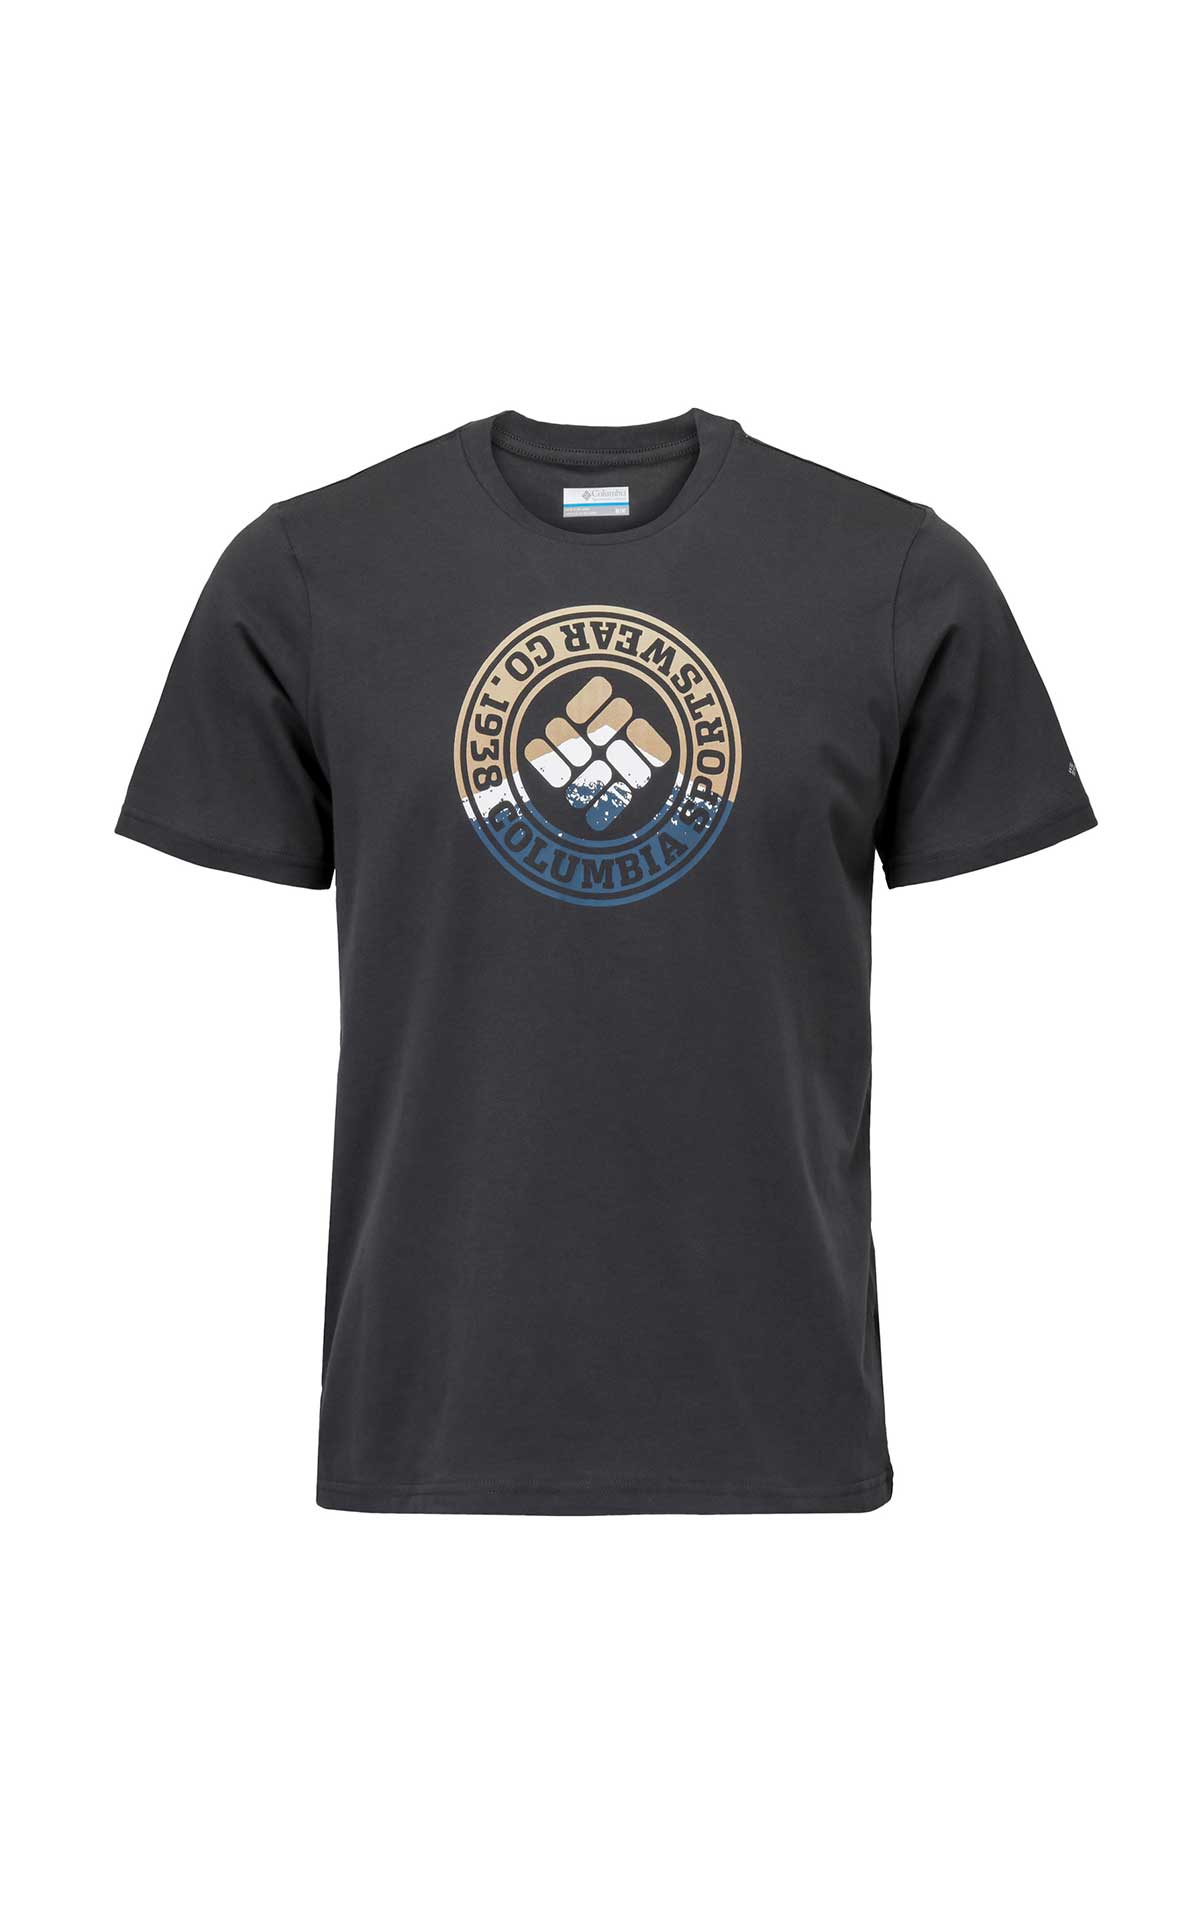 Black T-shirt with Columbia logo for man